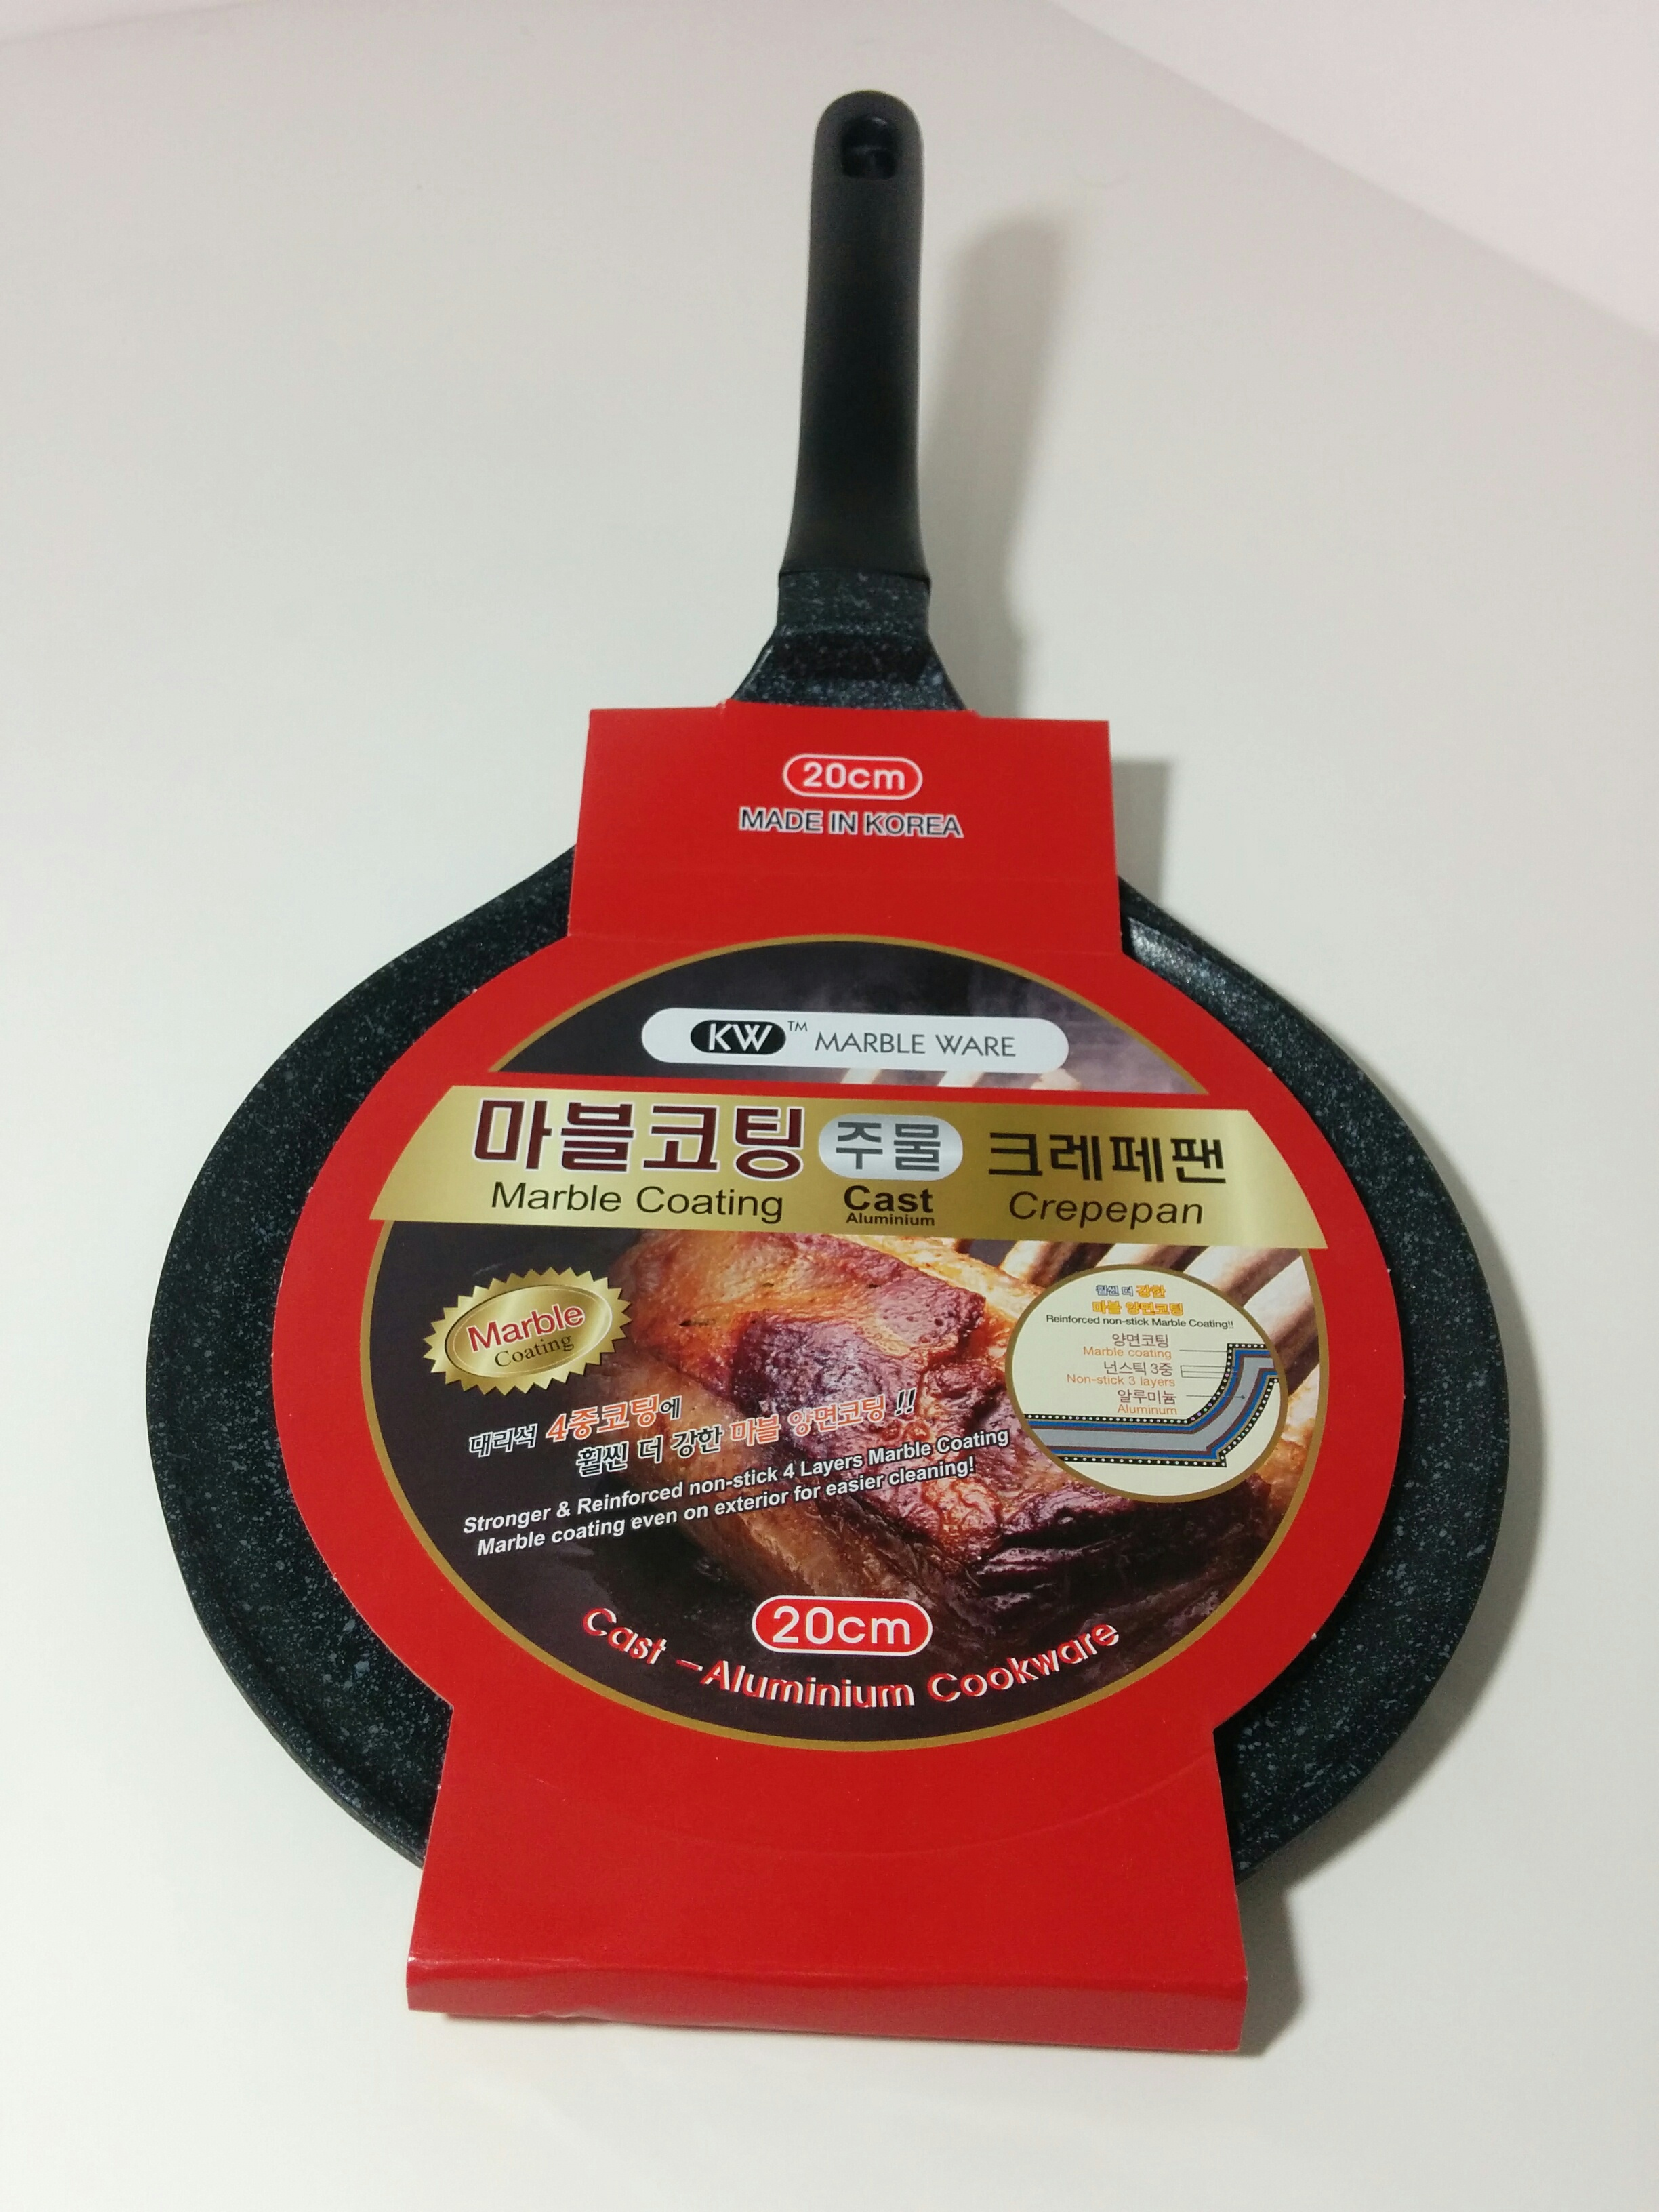 20cm Marble Coating Crepe Griddle Pan A To Z Appliances